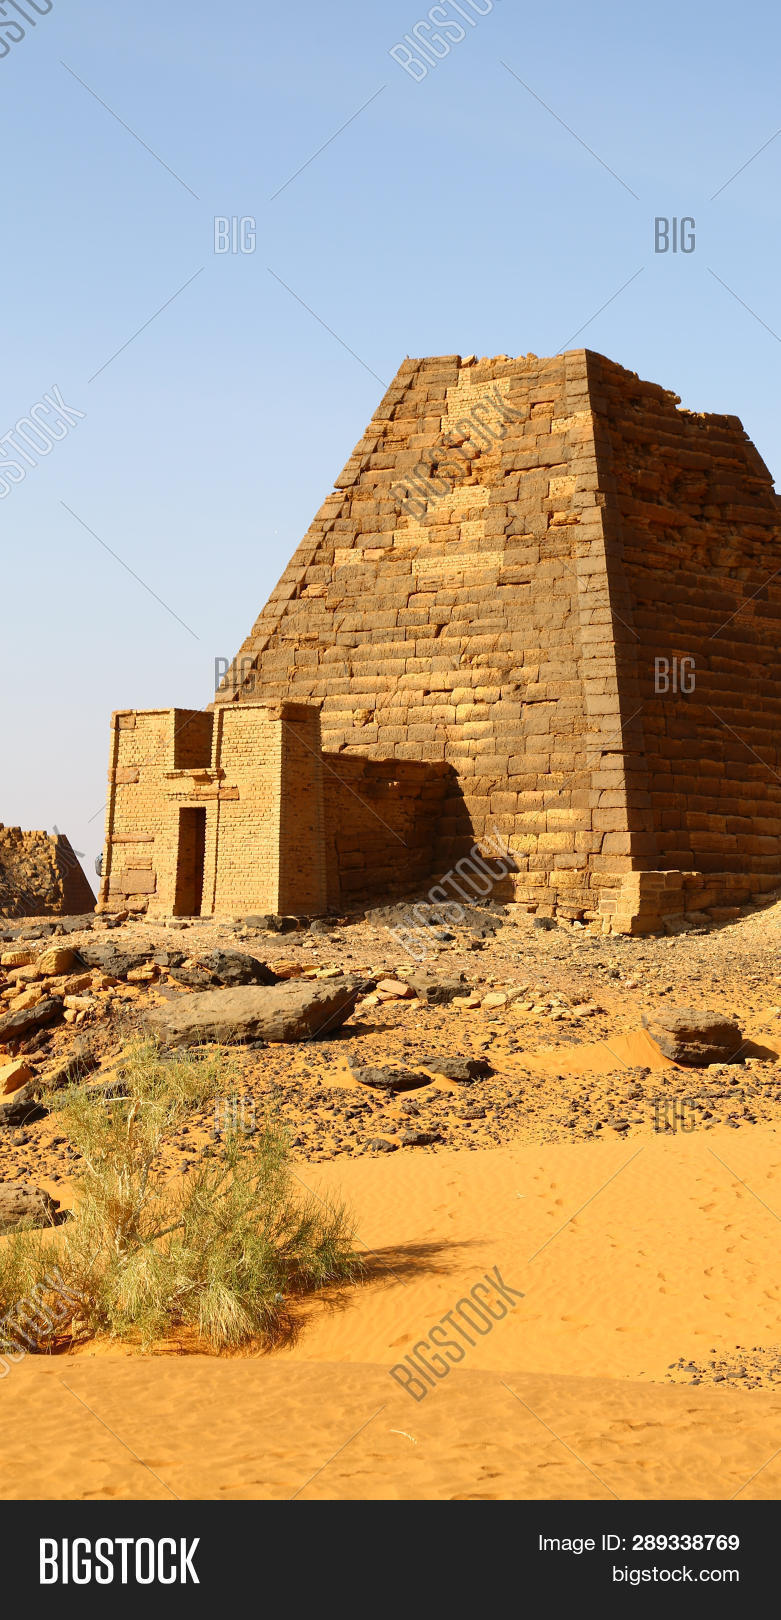 adventure,africa,ancient,antique,arid,black,boulders,brick,building,civilization,climate,culture,desert,dune,egypt,egyptians,explorers,famous,grave,heritage,history,karima,landscape,limestone,middle,mountain,mystery,napata,nile,nobody,north,nubia,nuri,old,pharaoh,place,pyramid,ruin,sahara,sand,site,sudan,temple,tomb,travel,unesco,walking,yellow